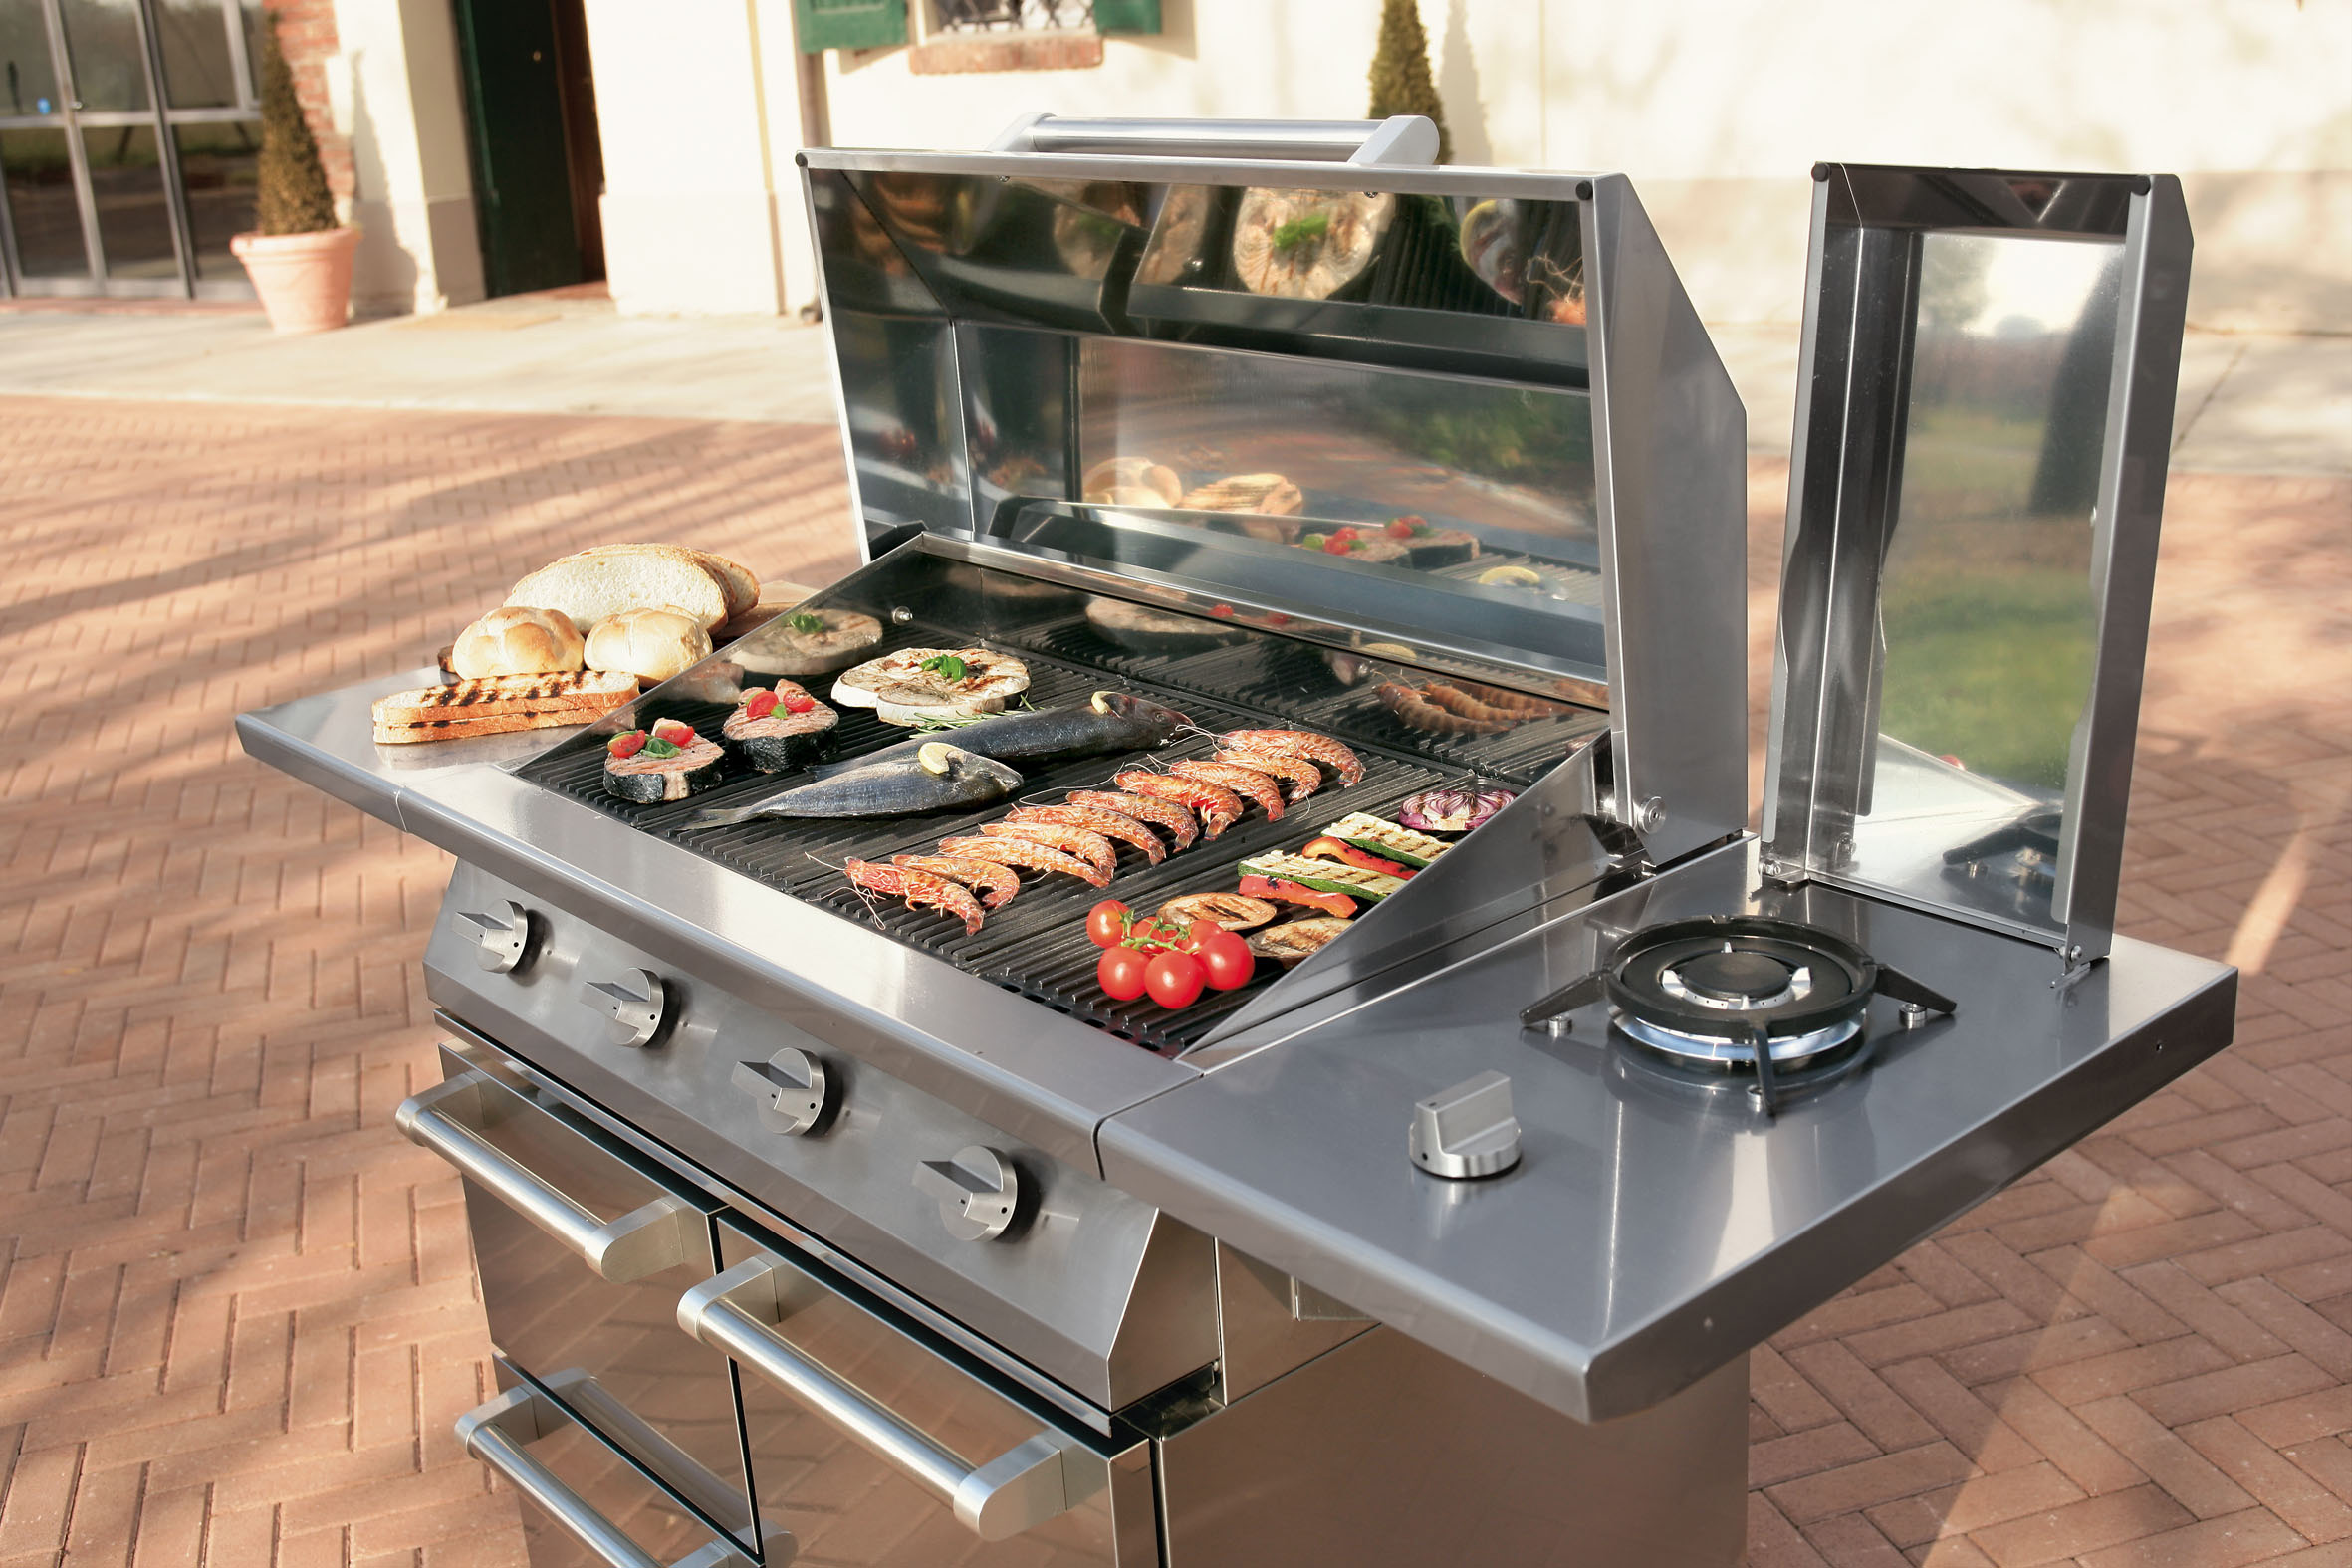 Steel_BBQ_outdoor_kitchen.jpg